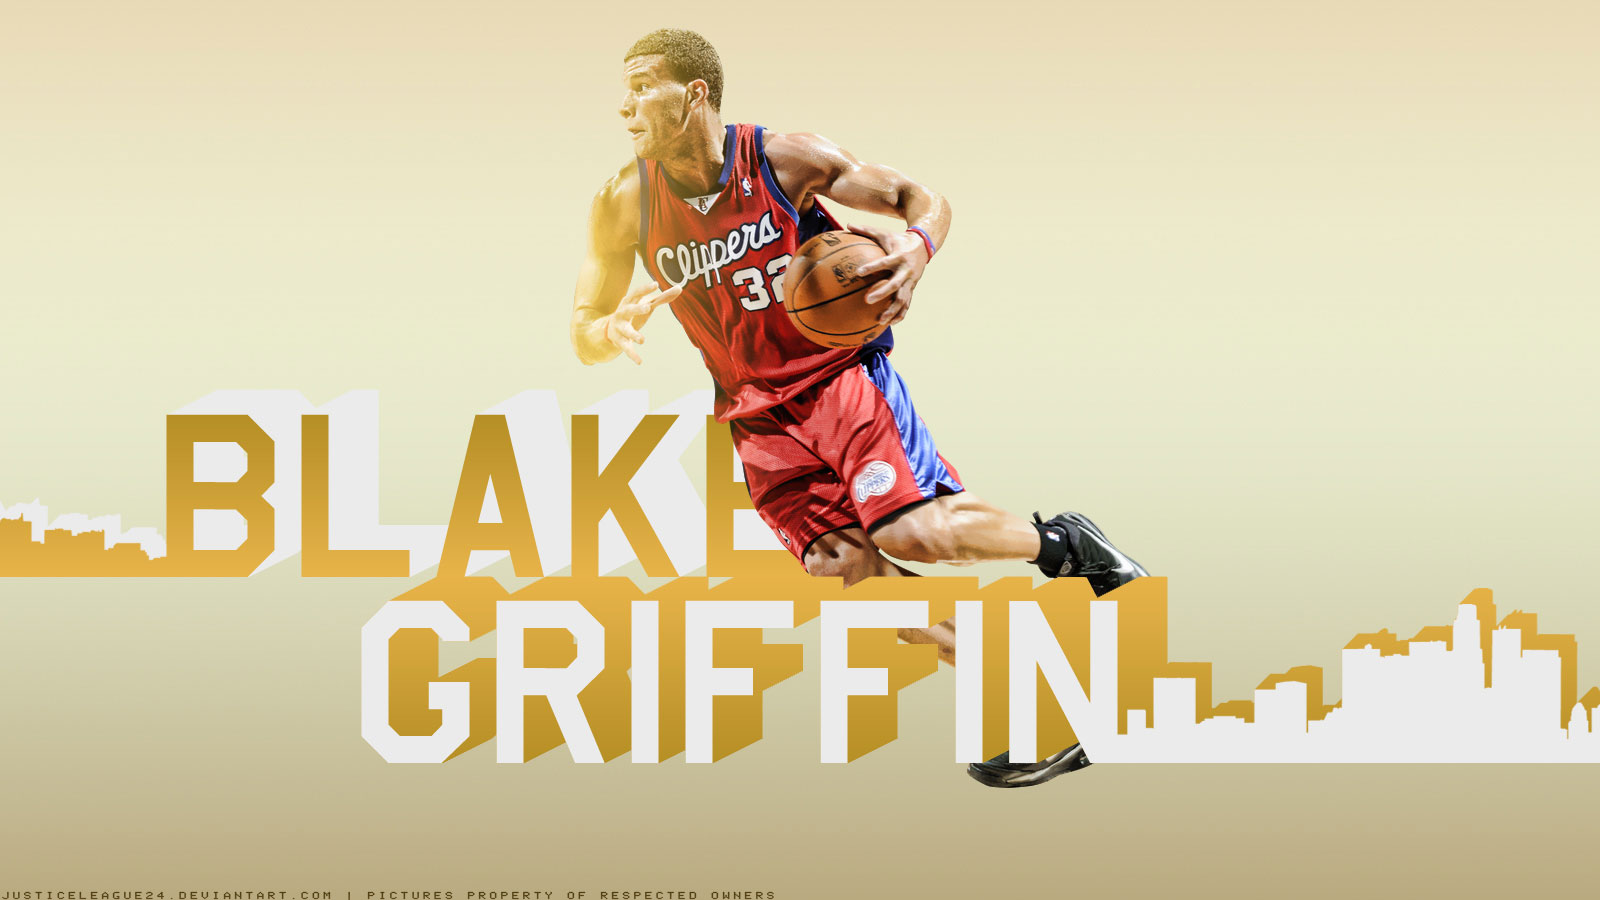 Blake+griffin+clippers+wallpaper